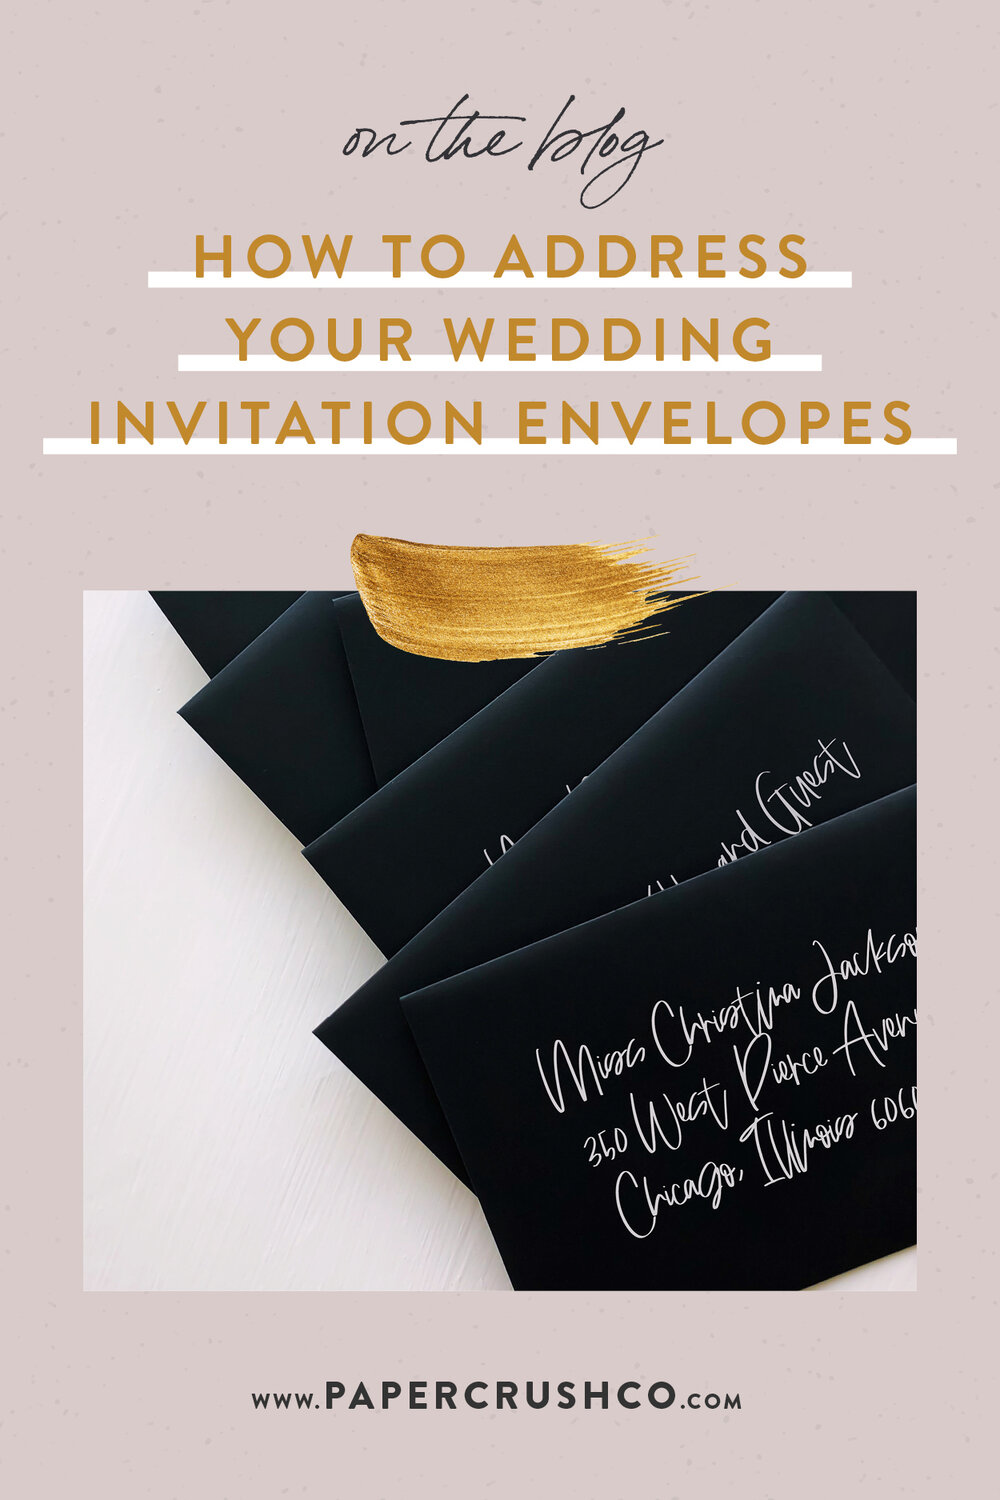 How to Address Your Wedding Envelope Invitations